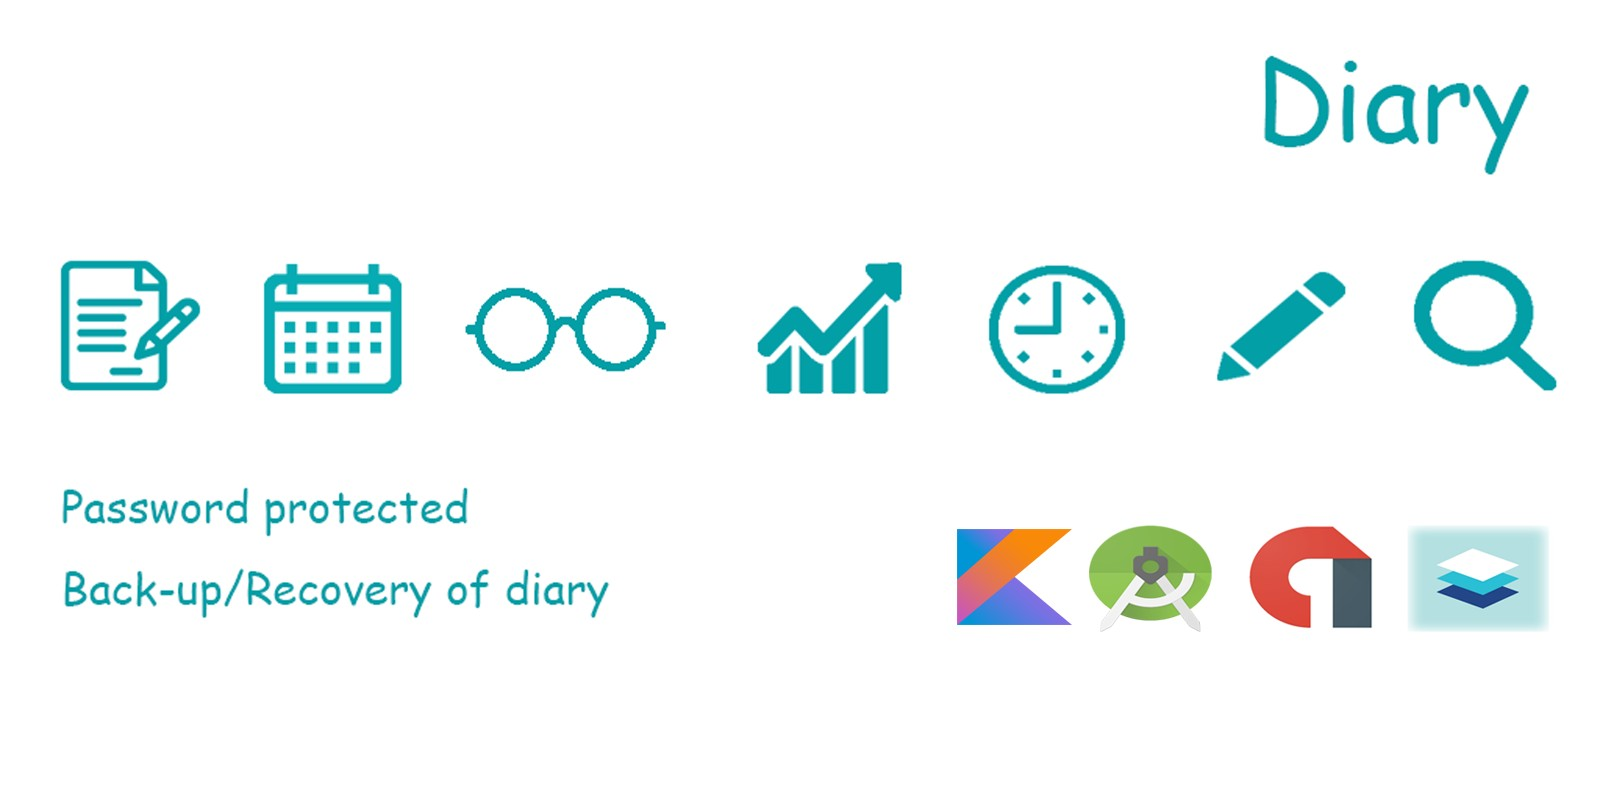 Daily Diary App - Android Studio Source Code